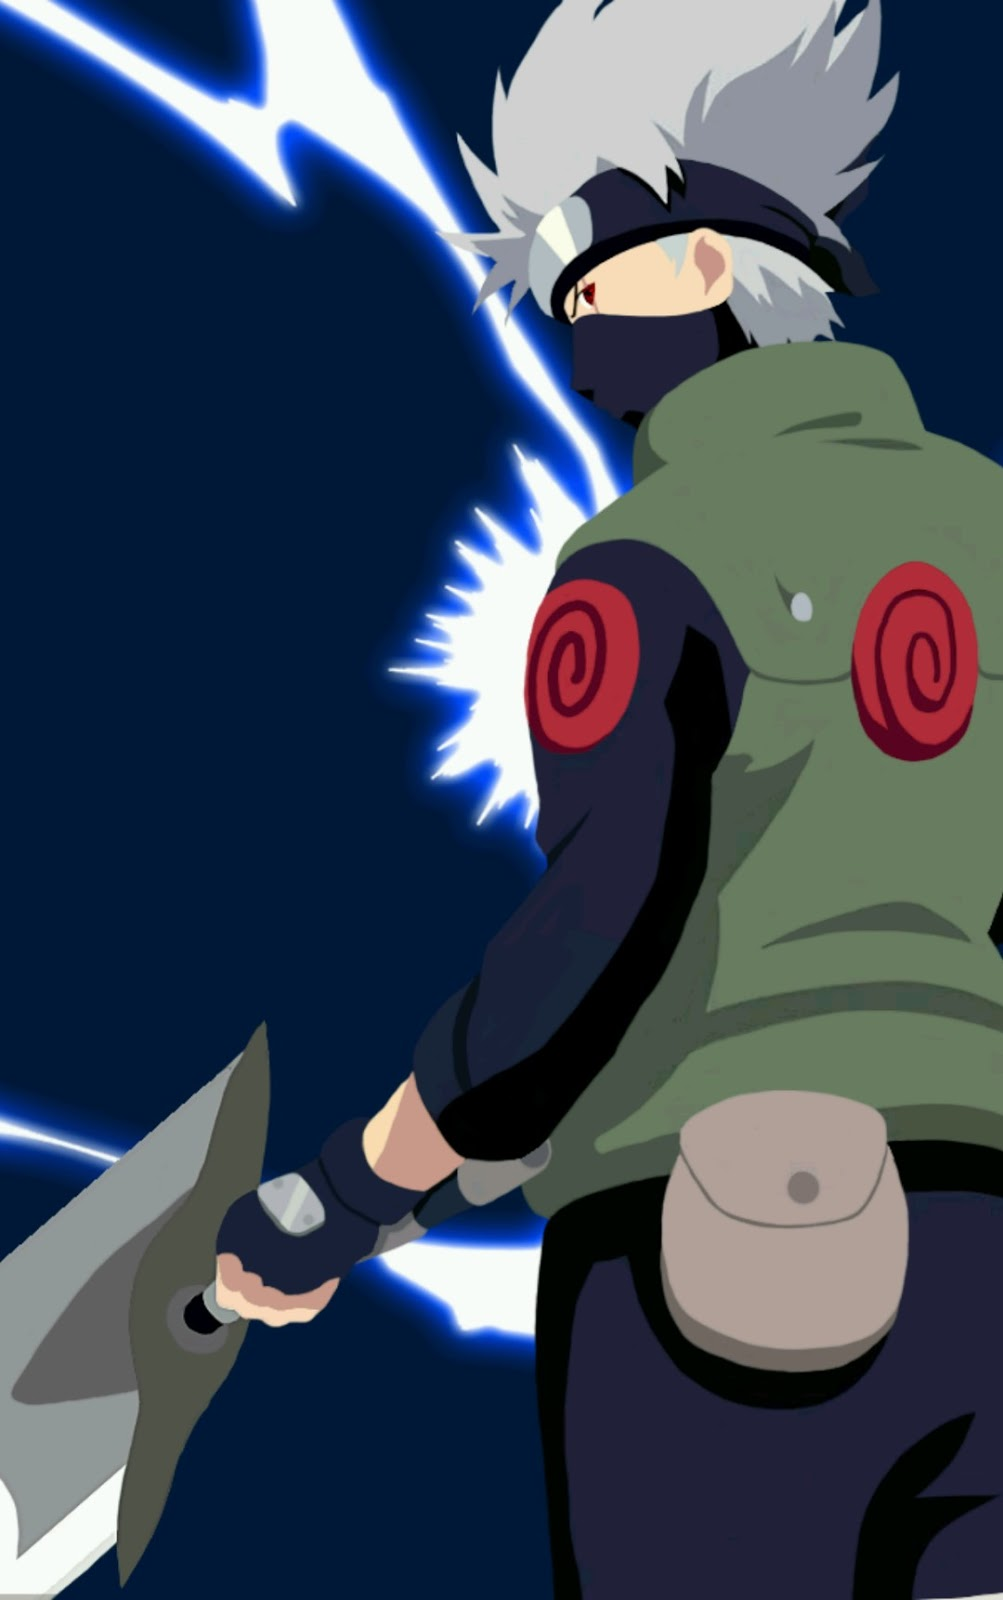 11 Download Wallpaper hatake kakashi vector untuk Android dan Whatsapp